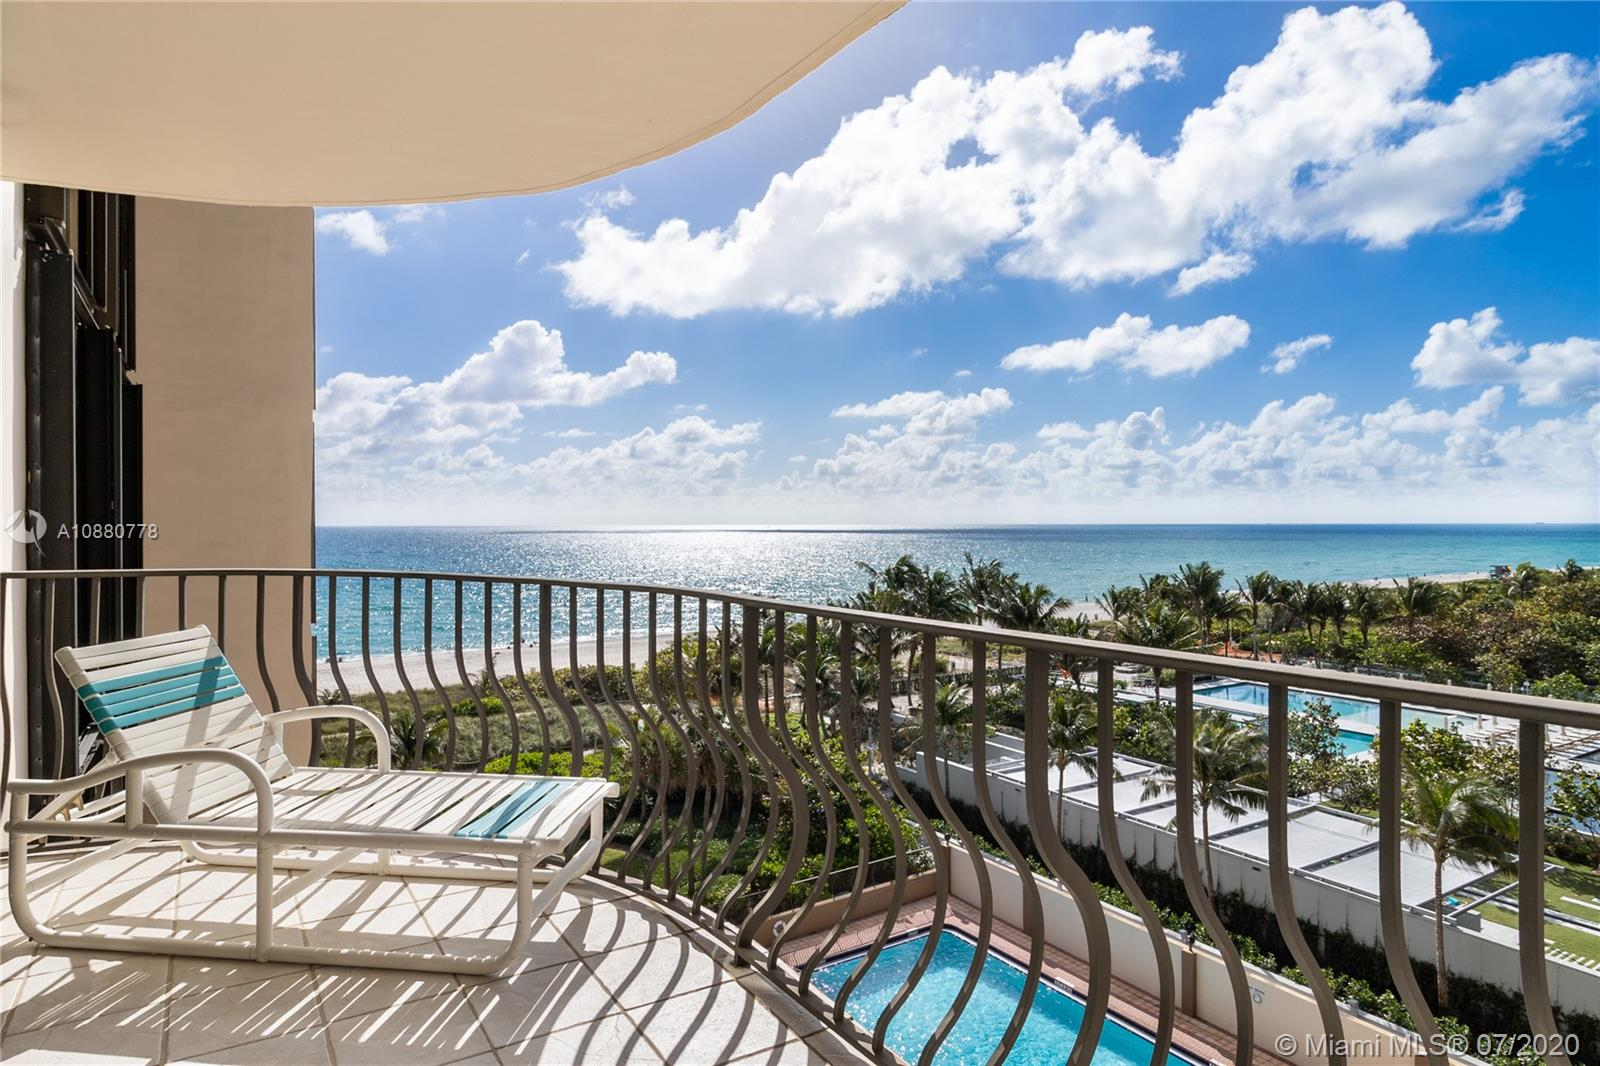 Champlain Towers South #611 - 8777 Collins Ave #611, Surfside, FL 33154